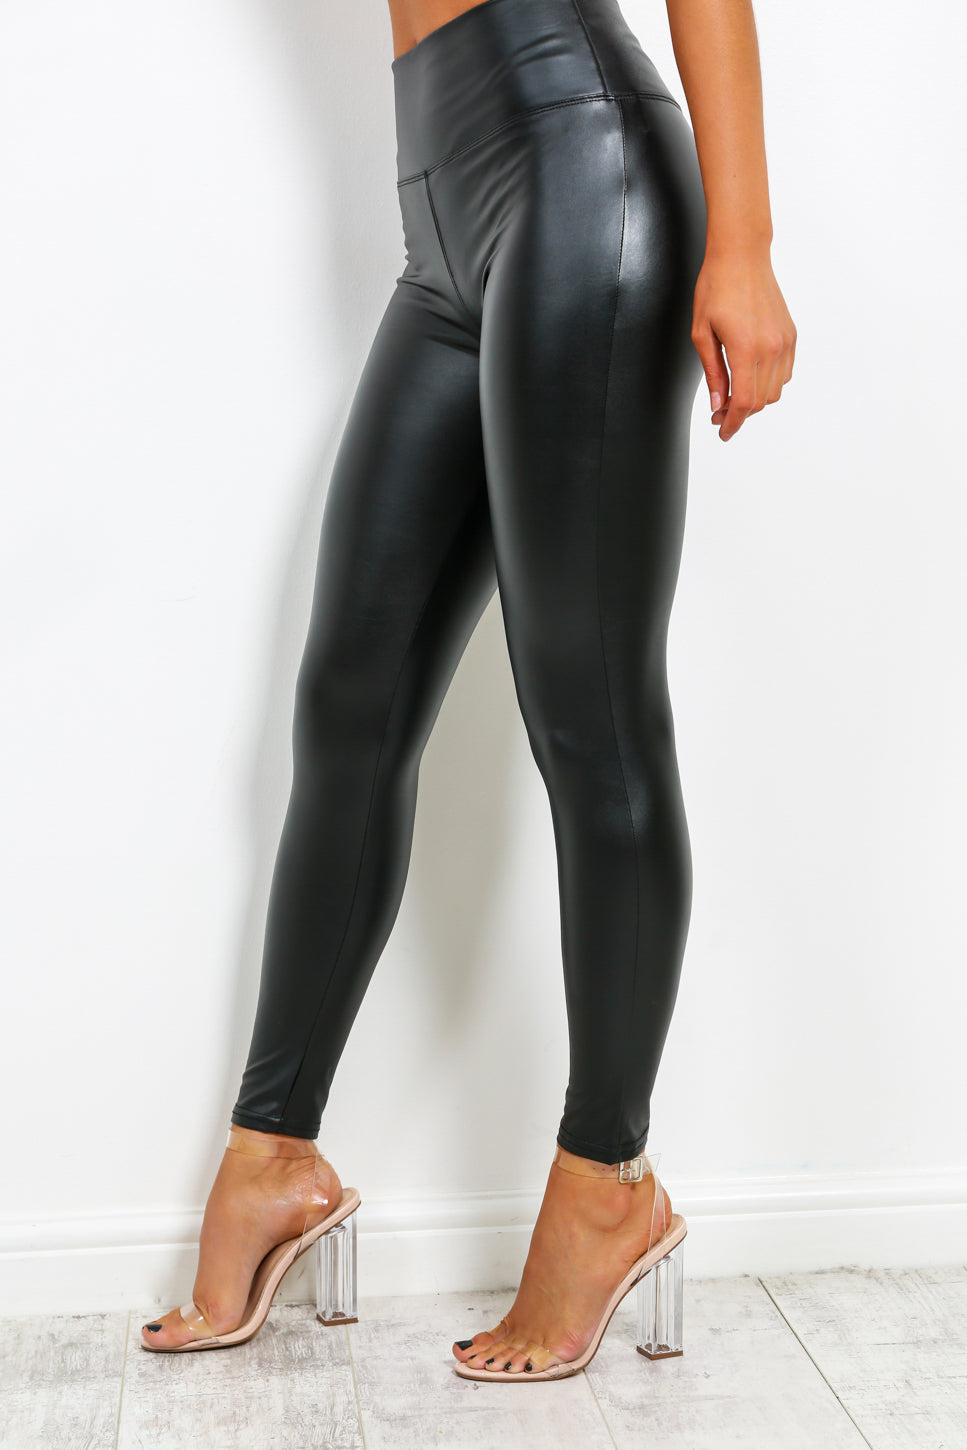 Leather Let Me Go - Black Leggings